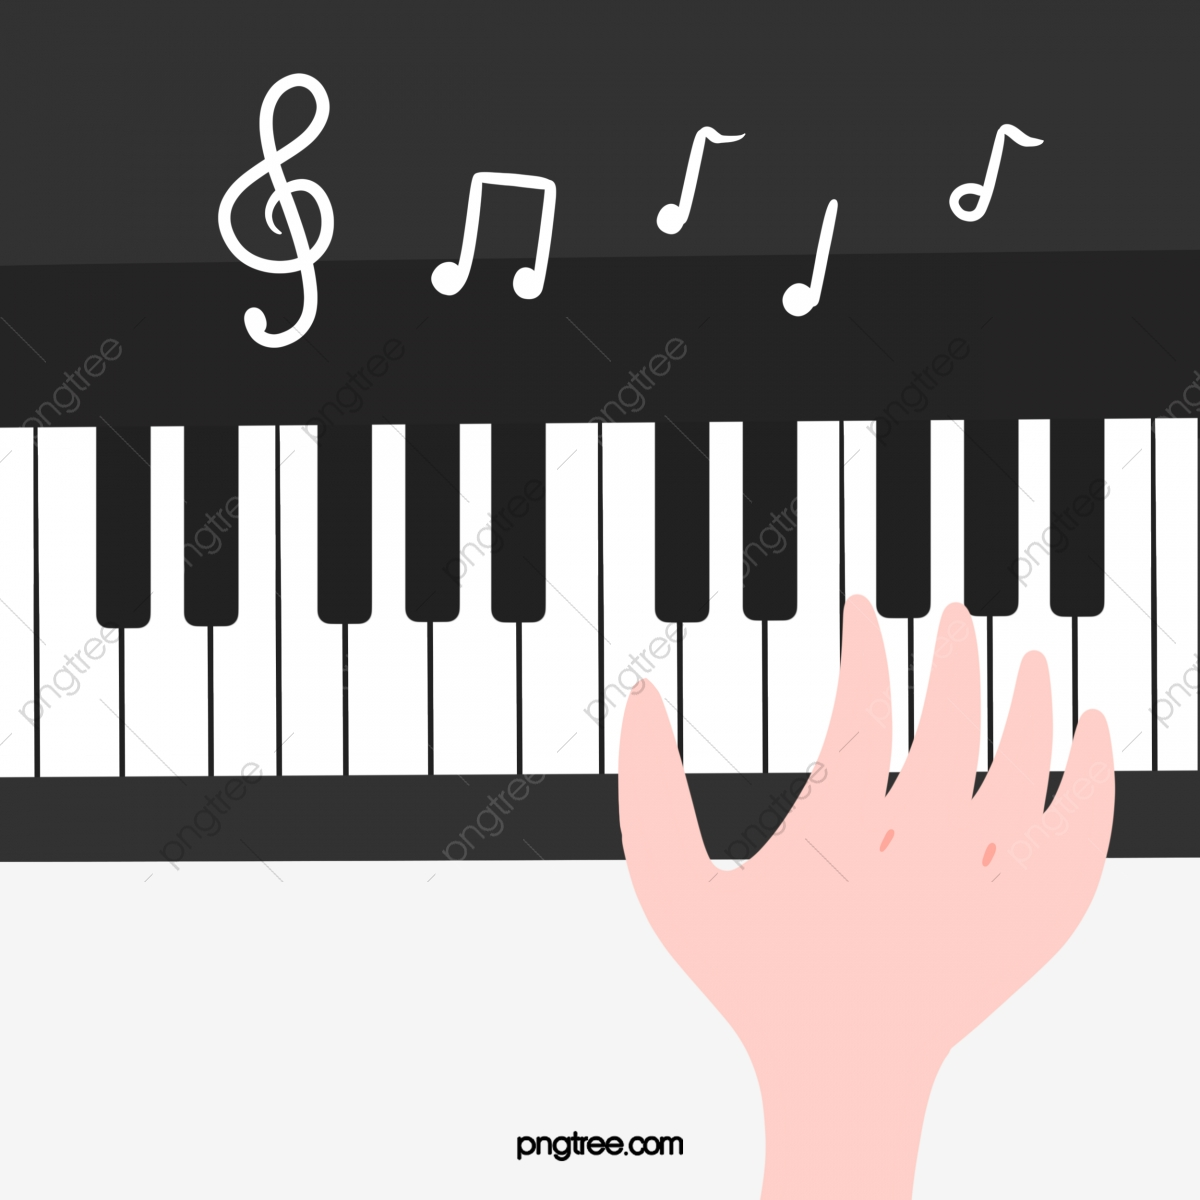 Hand painted playing musical. Piano clipart cute